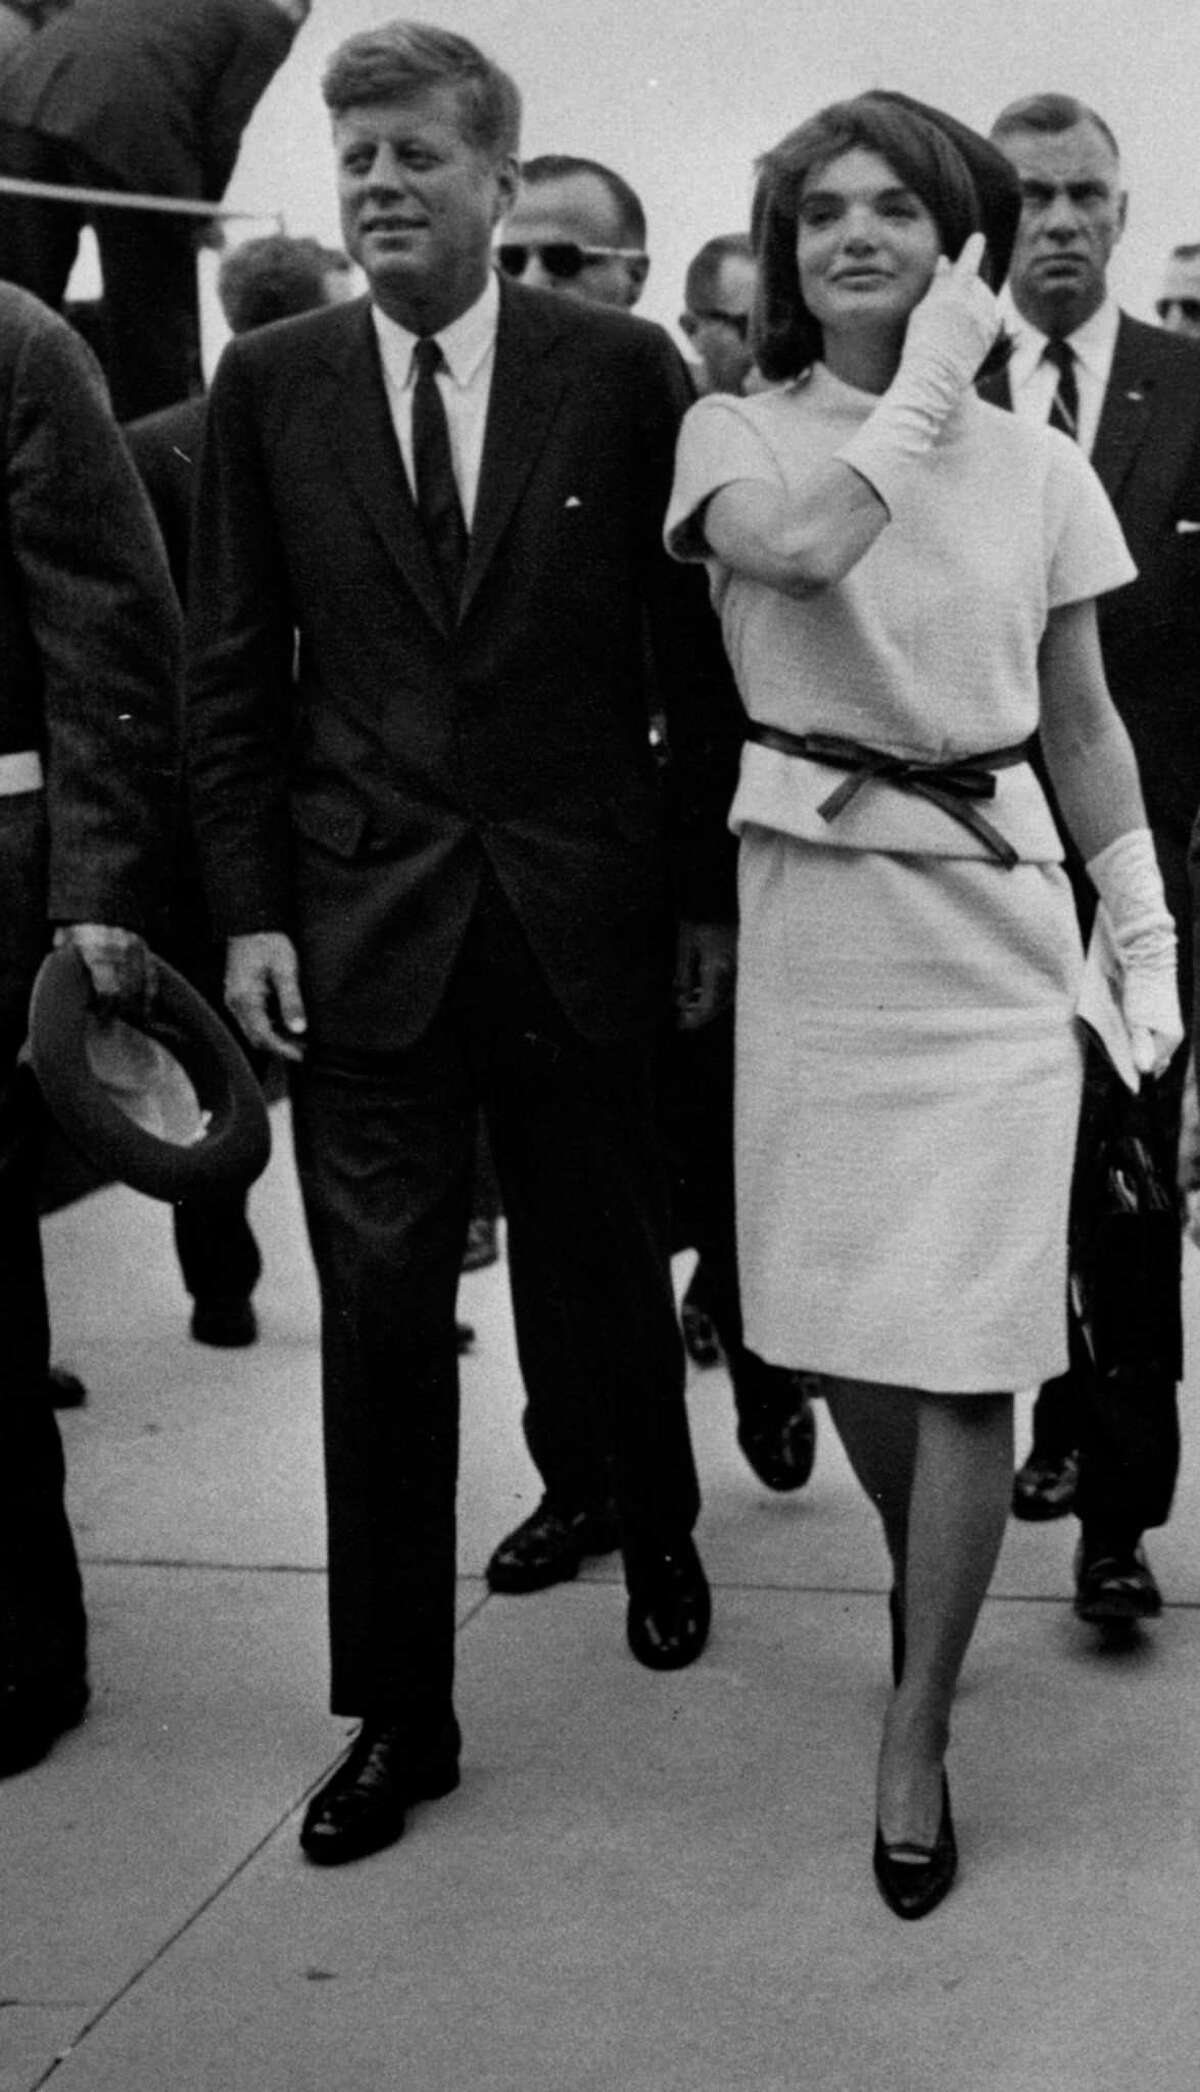 President John F. Kennedy and first lady Jacqueline Kennedy are surrounded by security during their visit to San Antonio on Nov. 21, 1963, one day before his assassination in Dallas.